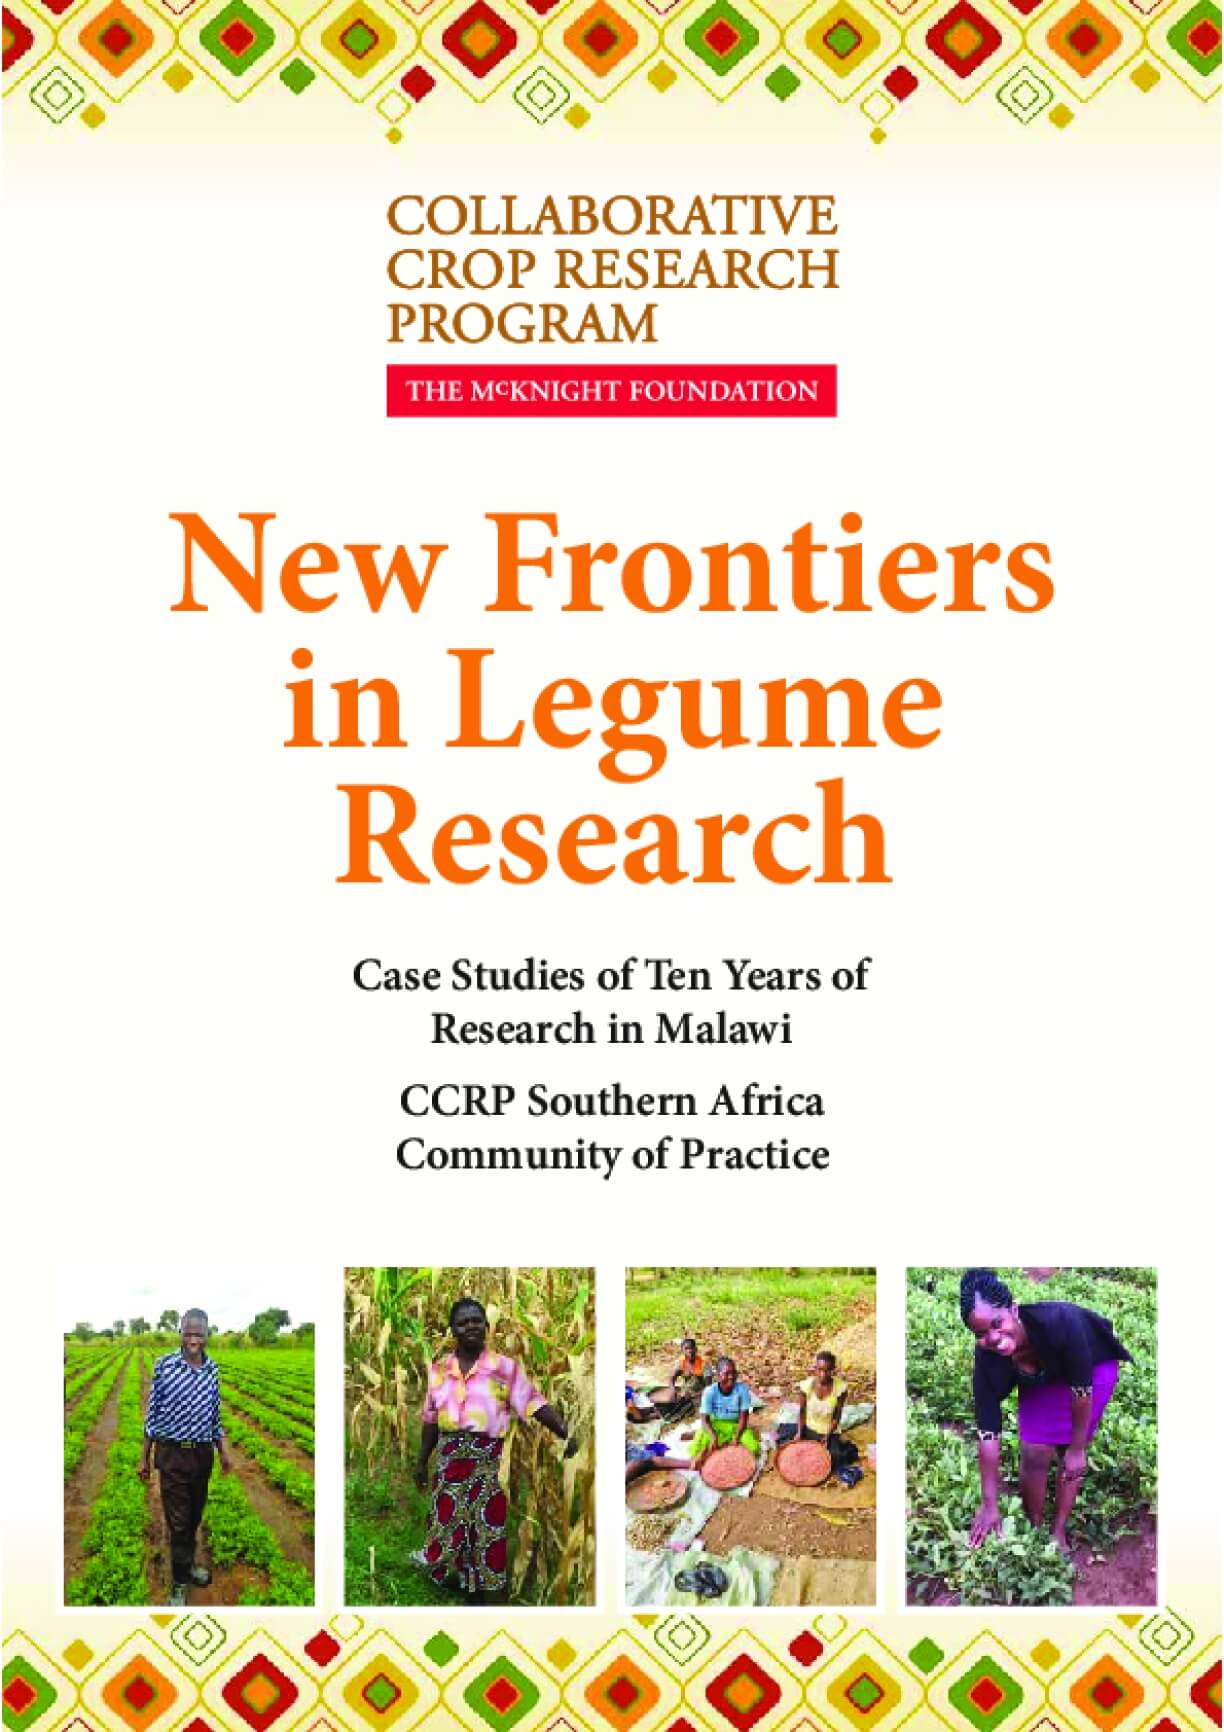 New Frontiers in Legume Research